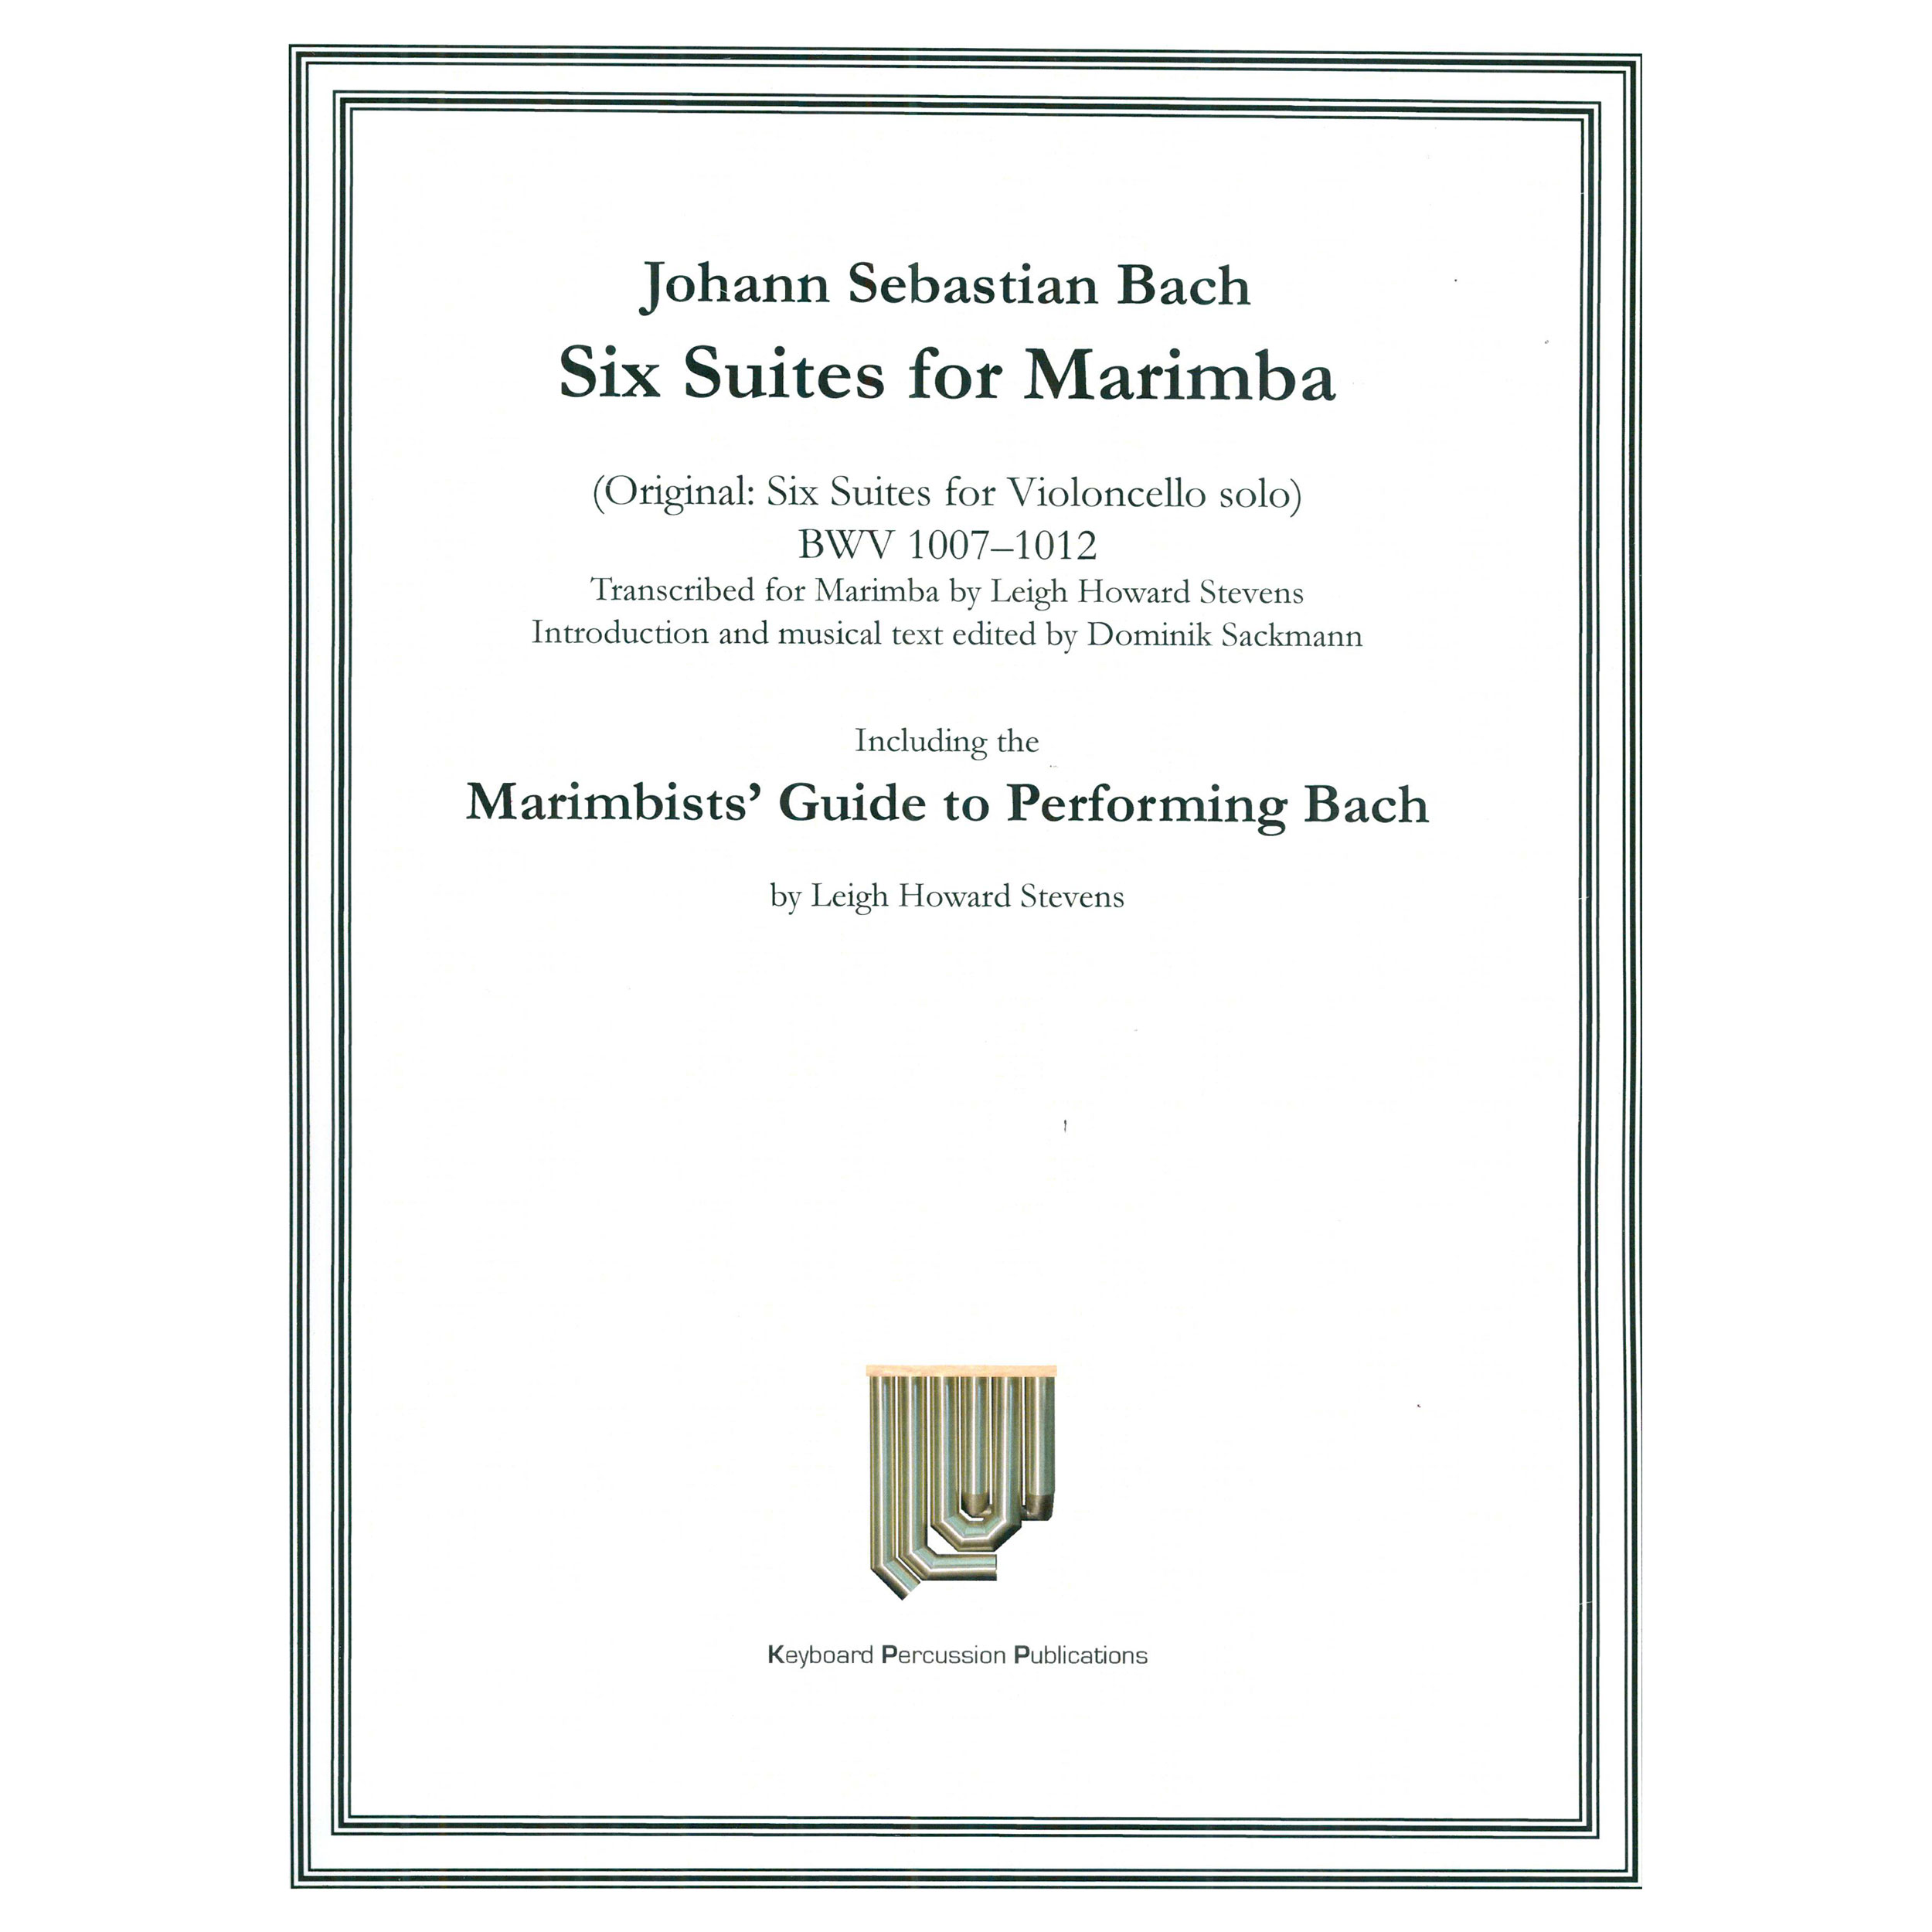 Six Suites for Marimba (Cello Suites) by J. S. Bach trans. Leigh Howard Stevens